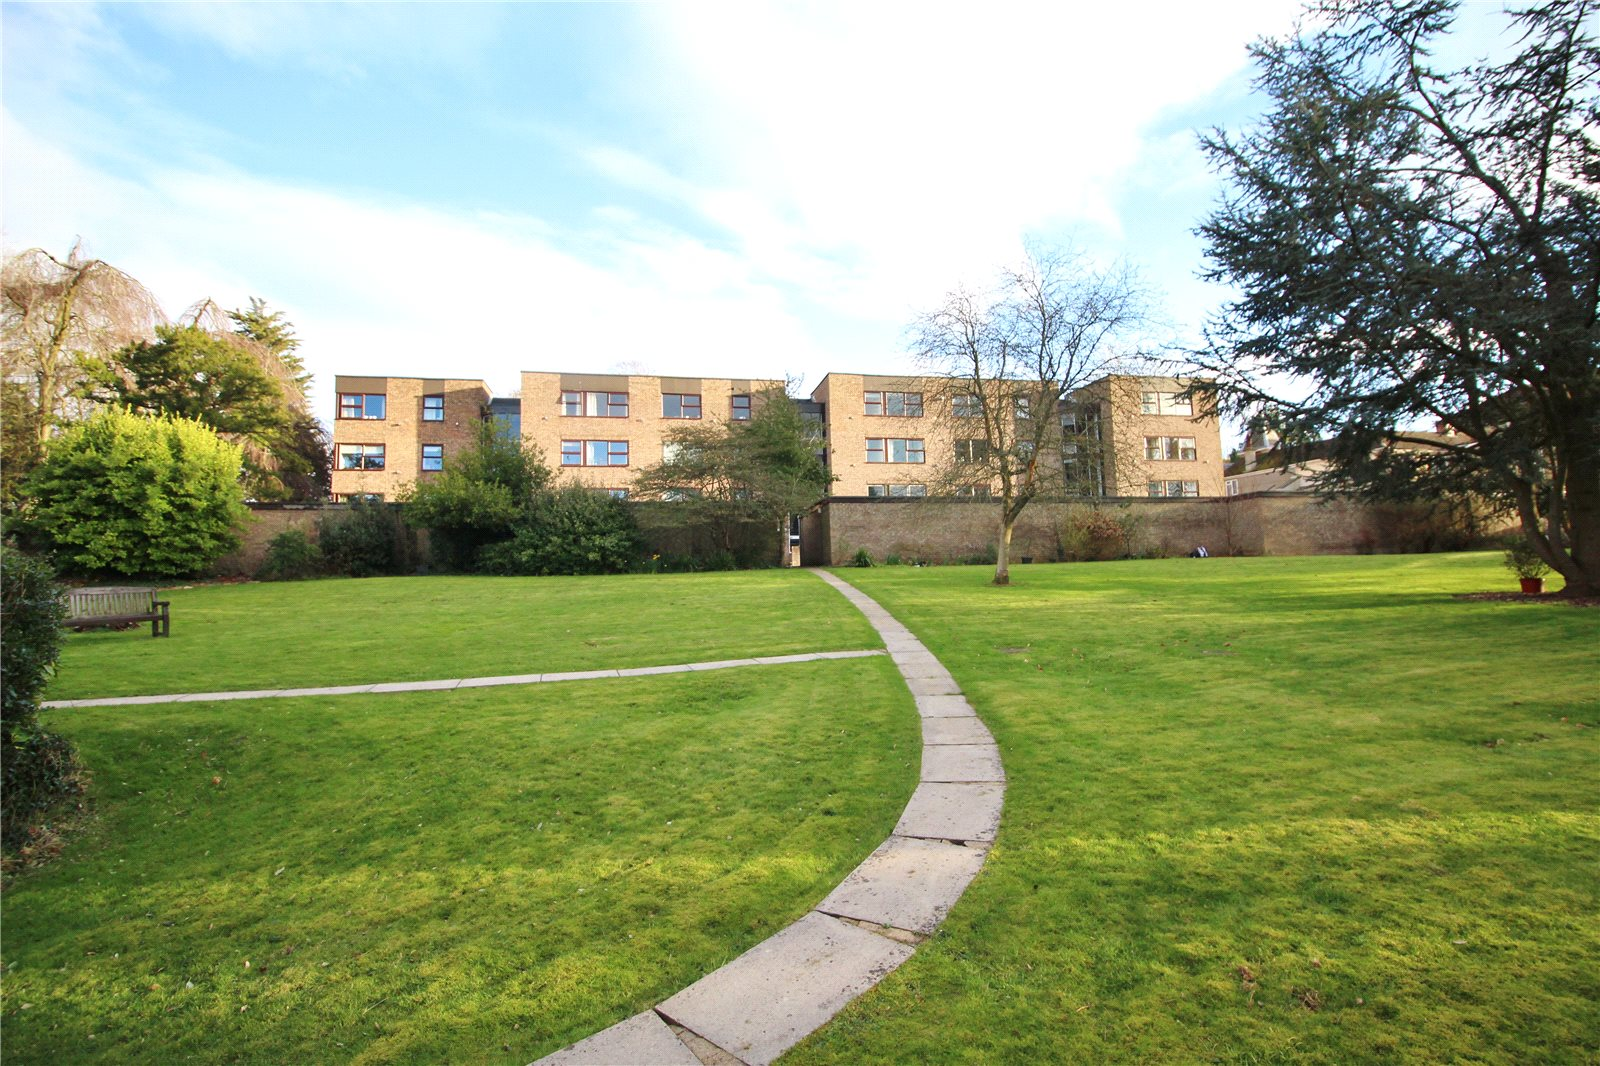 1 Bedroom Flat for rent in Goodeve Park Hazelwood Road Bristol BS9